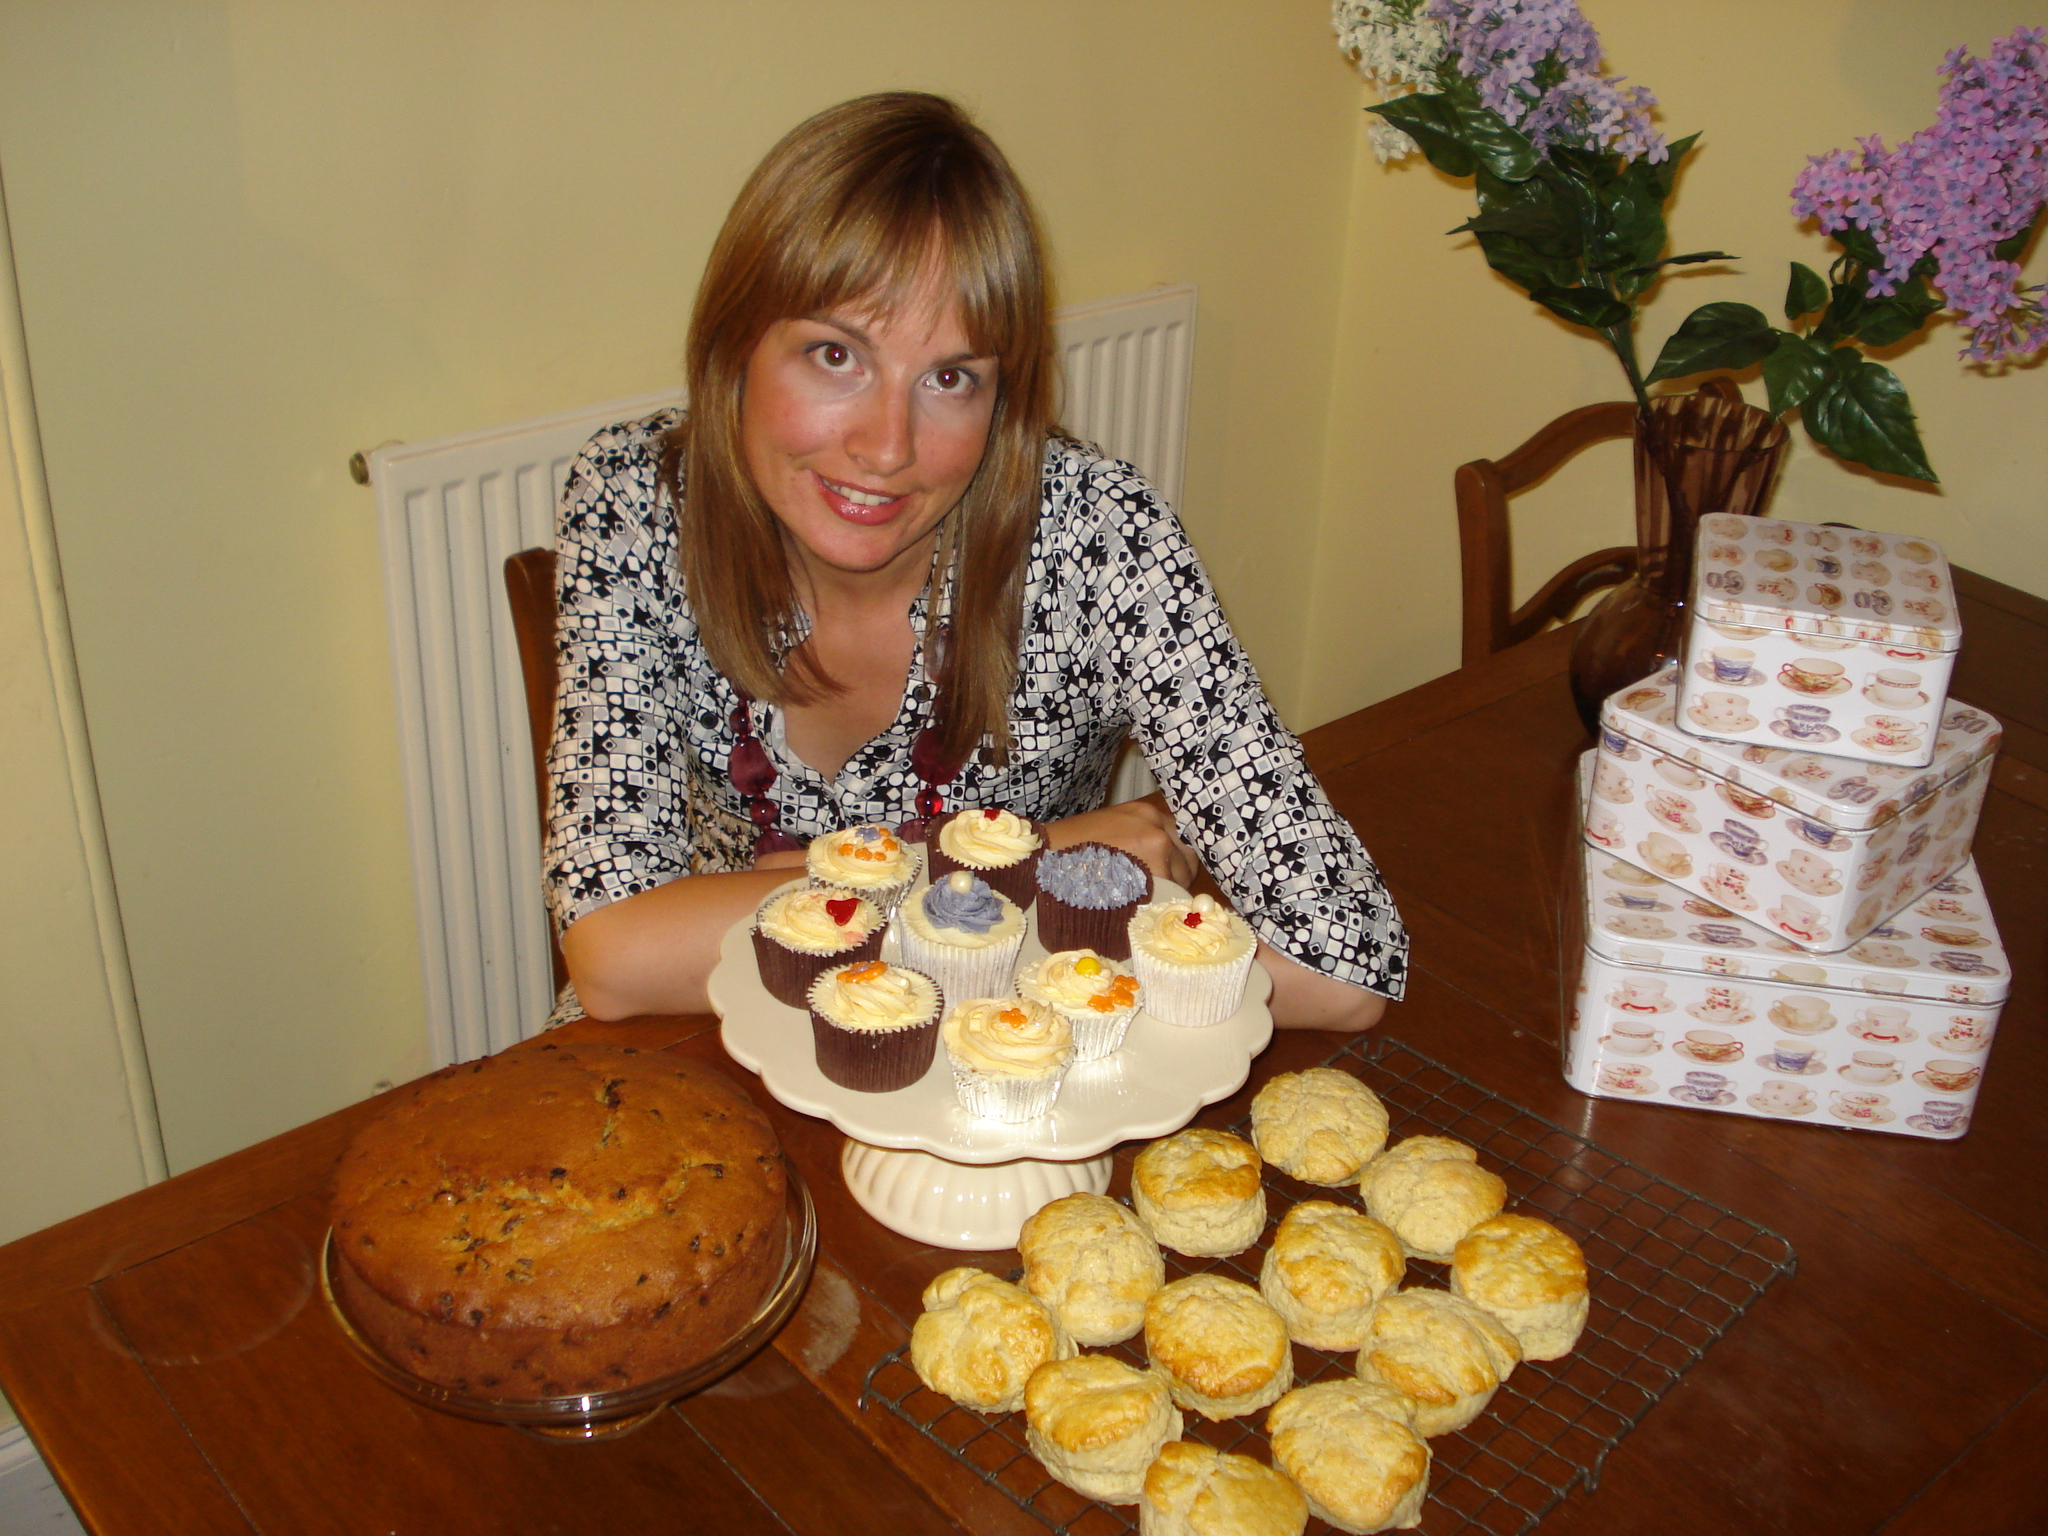 The Sultana cake, scones and carrot cupcakes